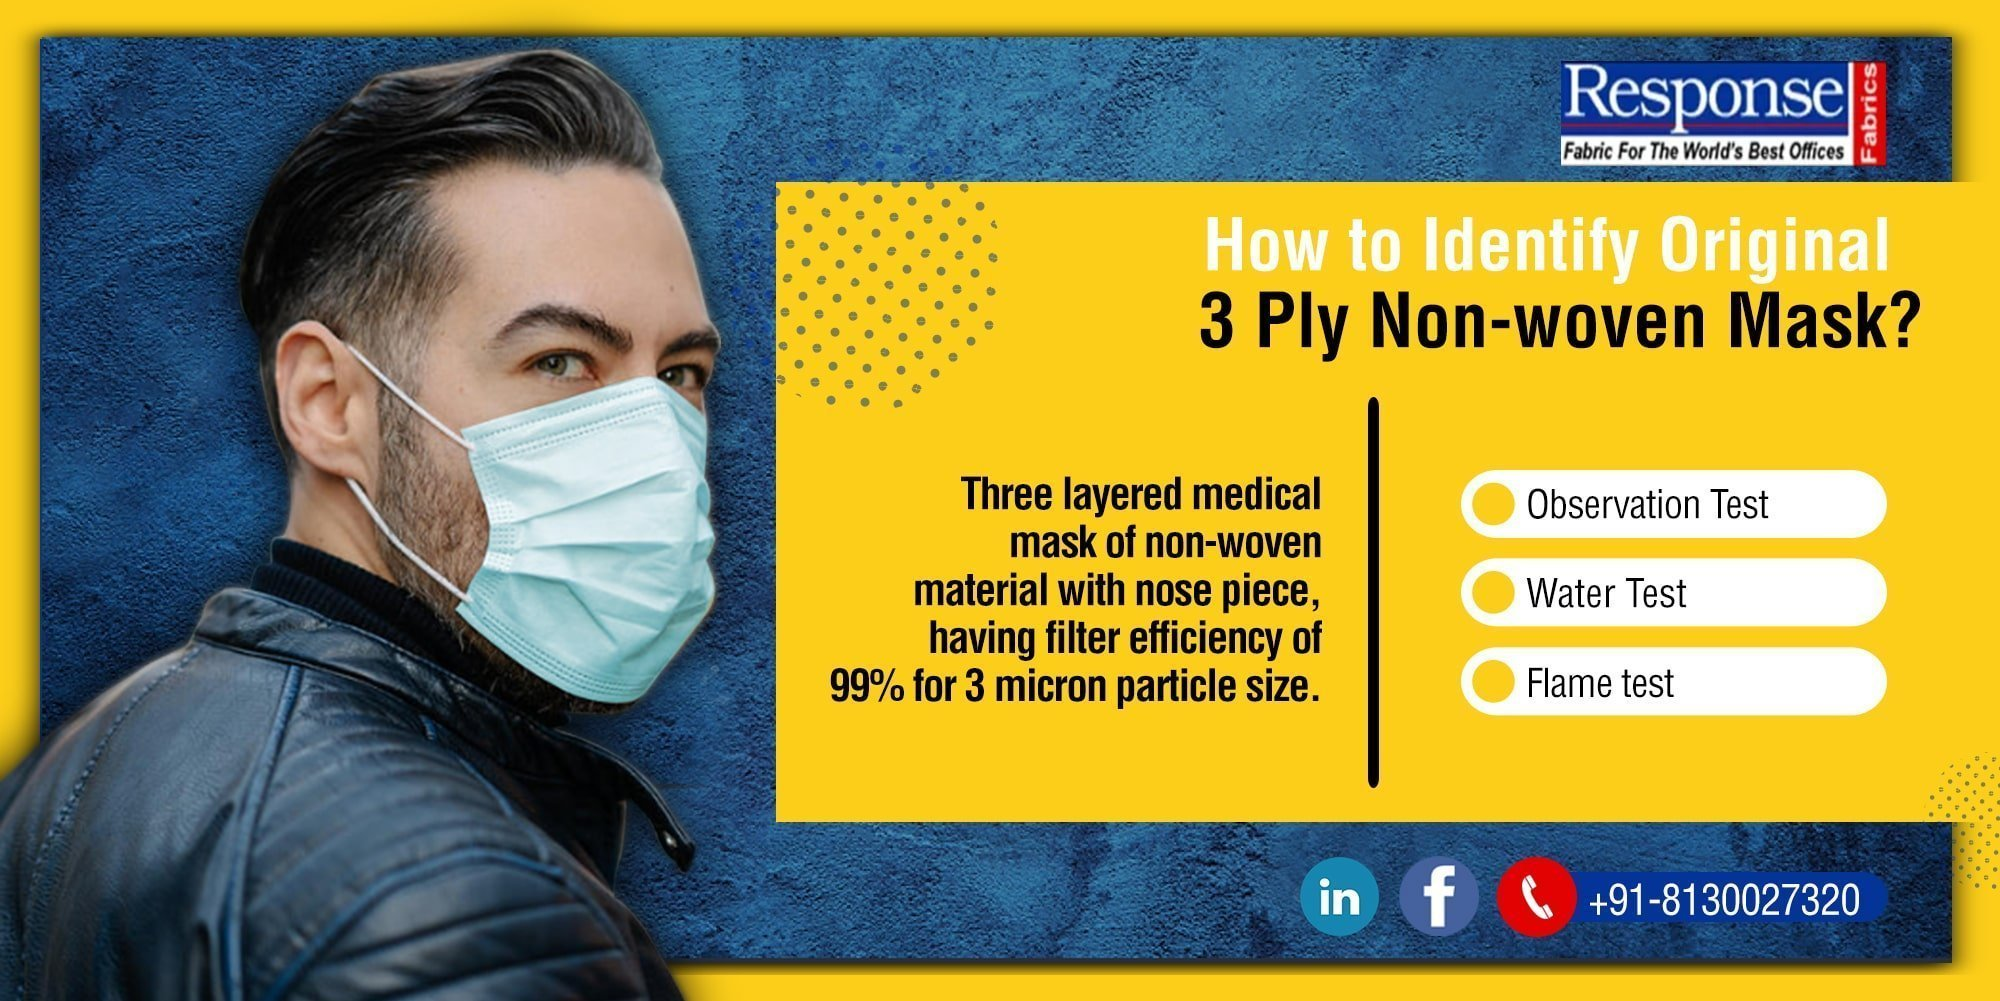 3 ply non-woven mask manufacturers